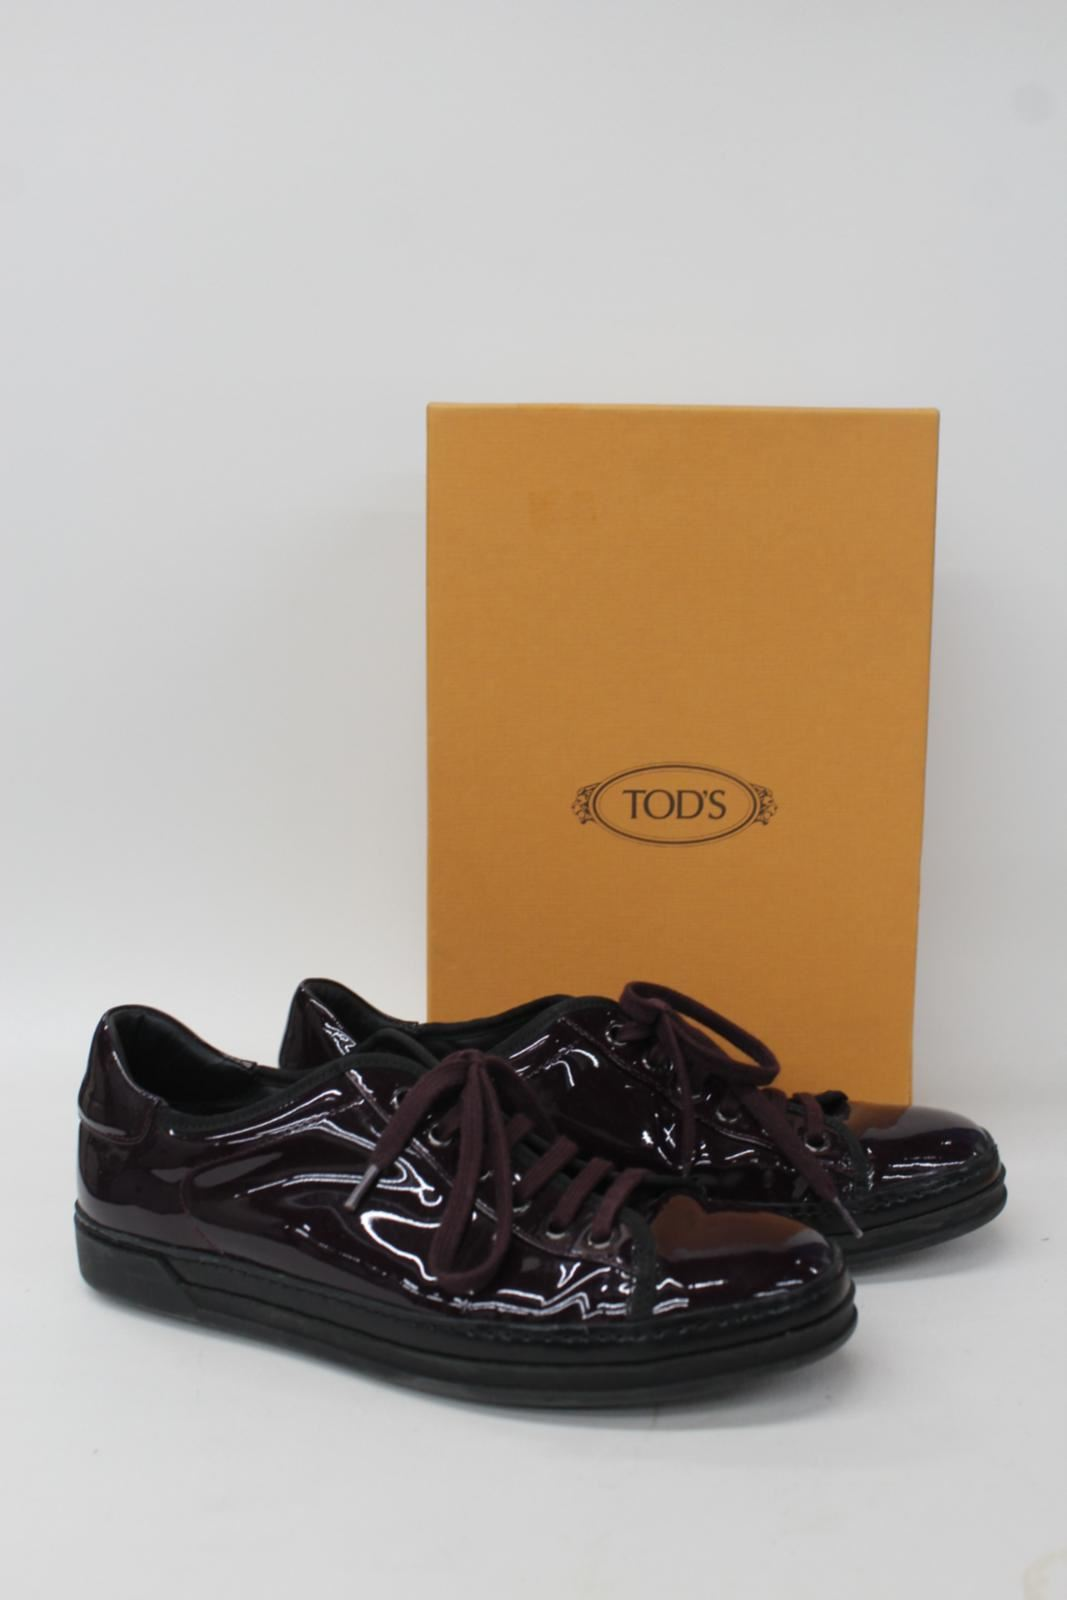 TOD'S Ladies Aubergine Purple Patent Leather Lace Up Trainers shoes UK5 EU38